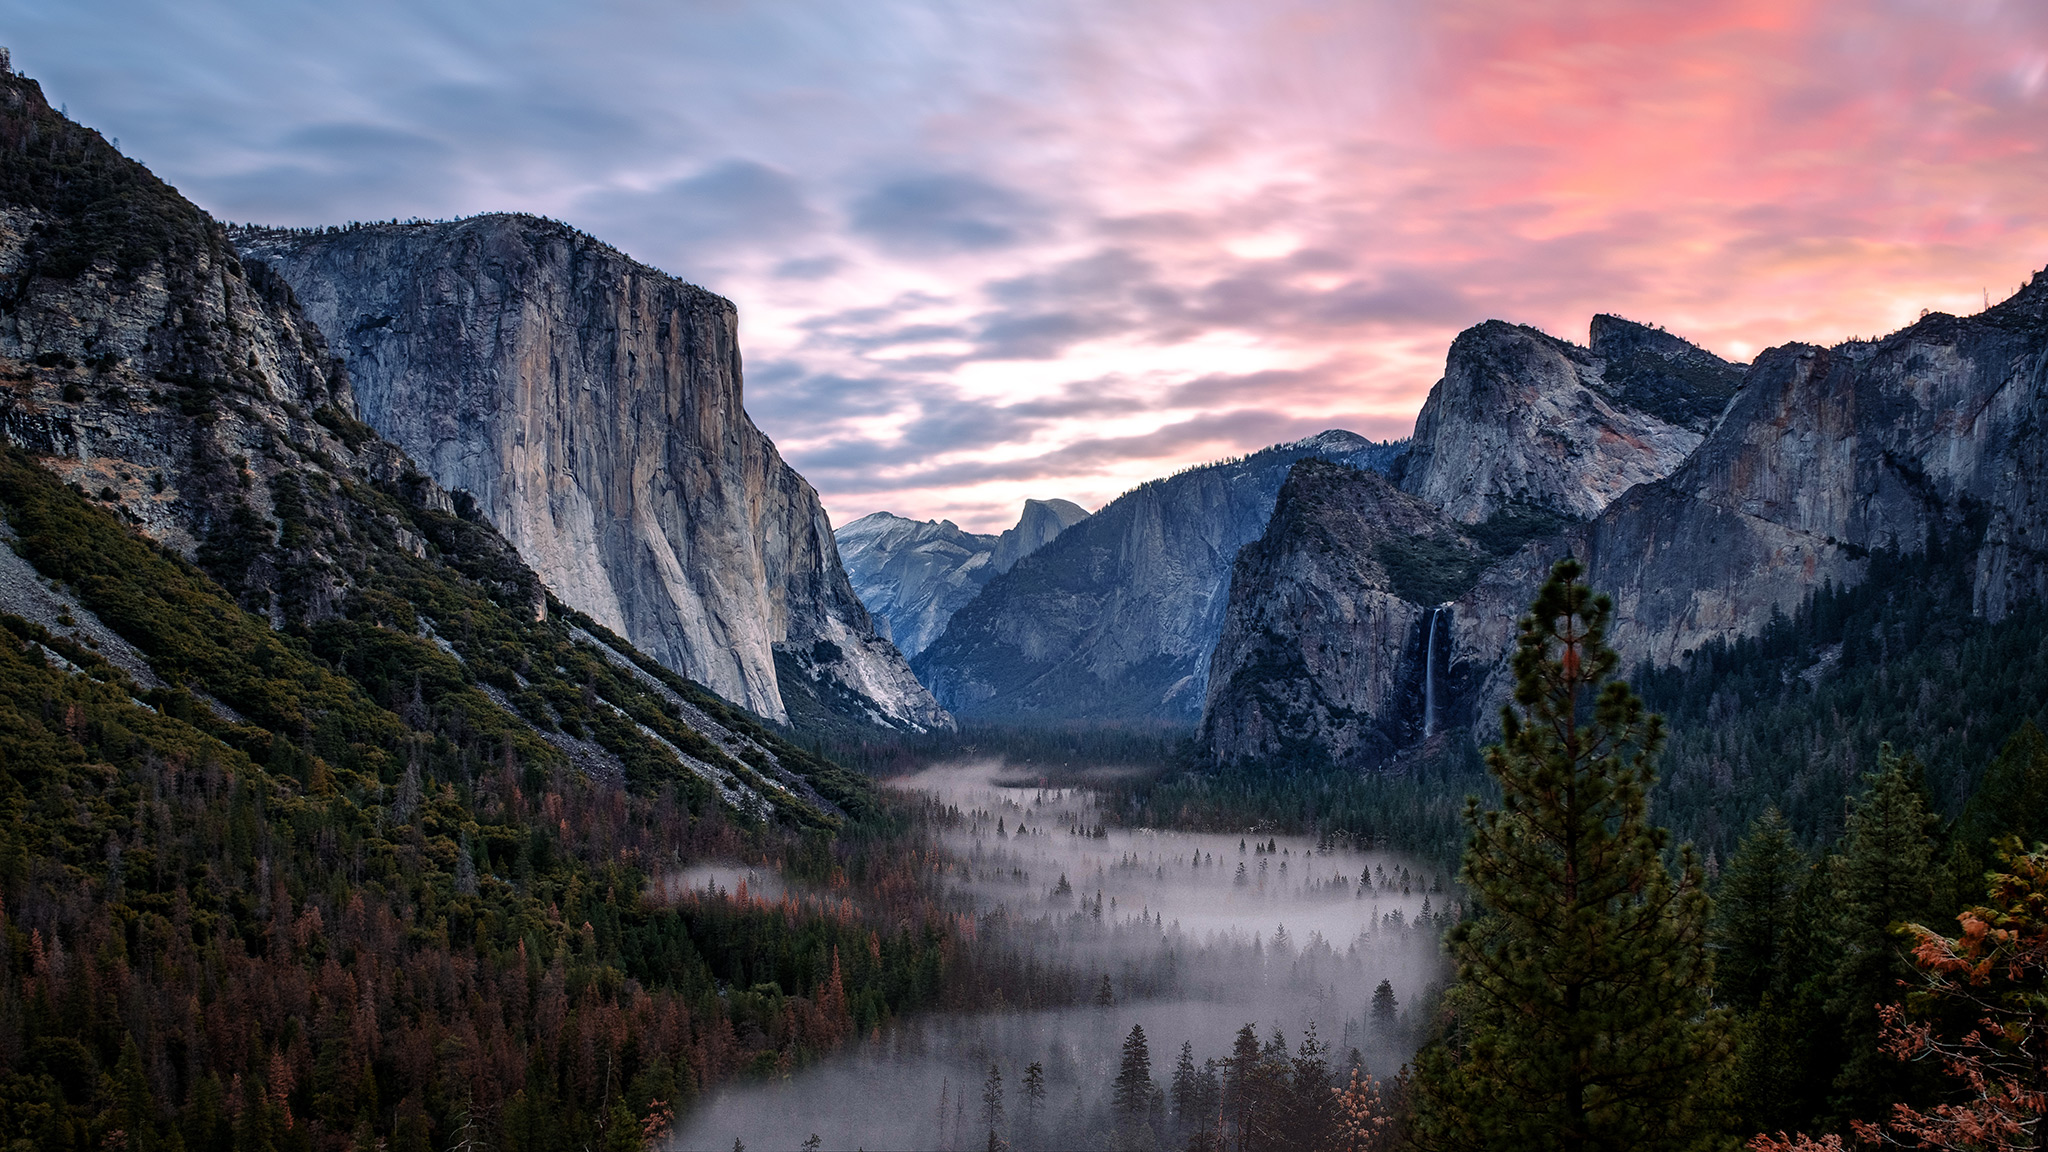 Sunrise at Tunnel View, Yosemite National Park.